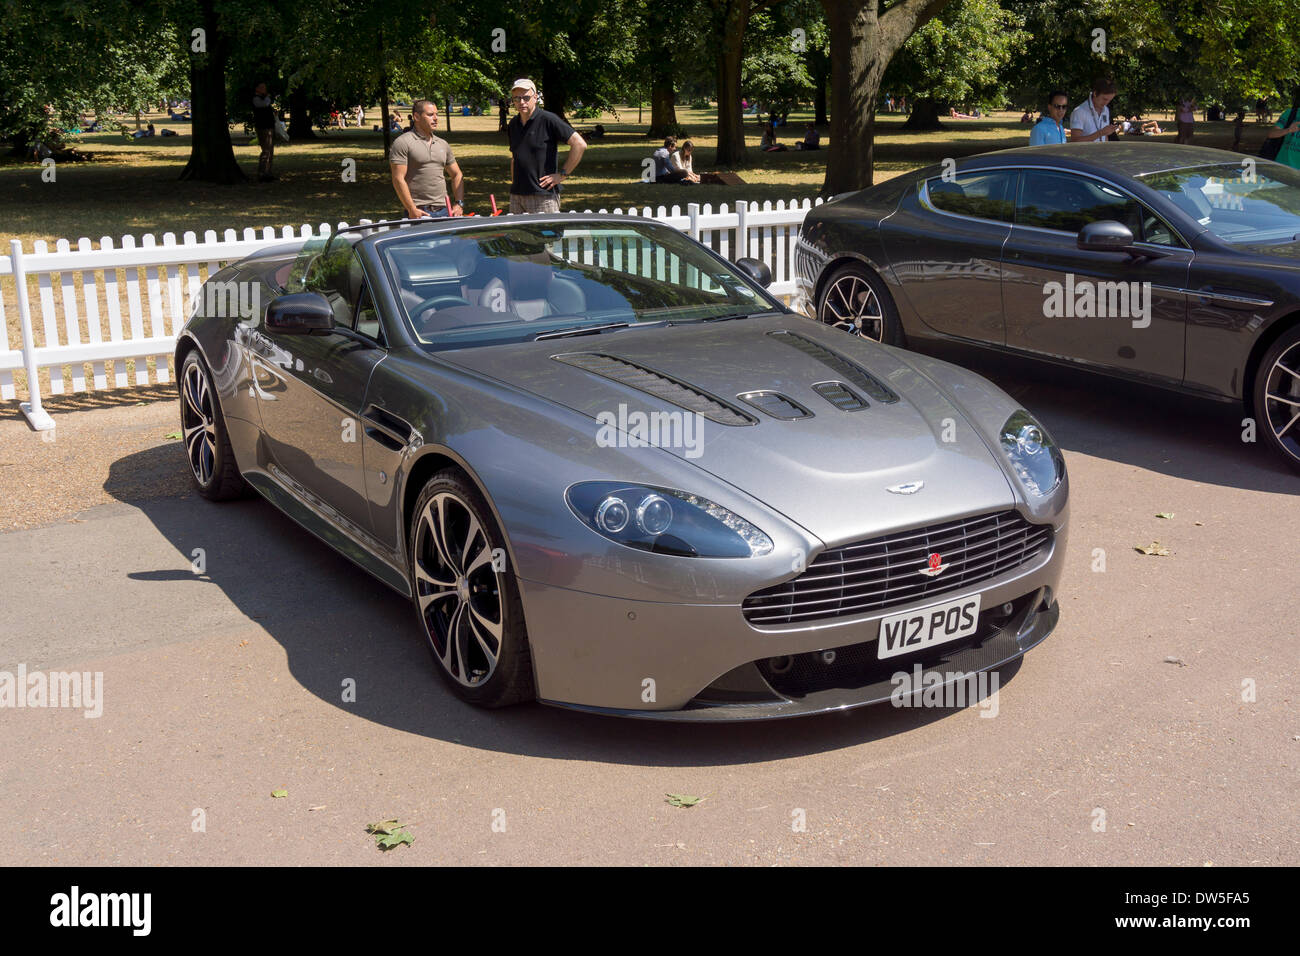 Aston Martin V12 Vantage Roadster 2012 Aston Martin Timeline Stock Photo Alamy